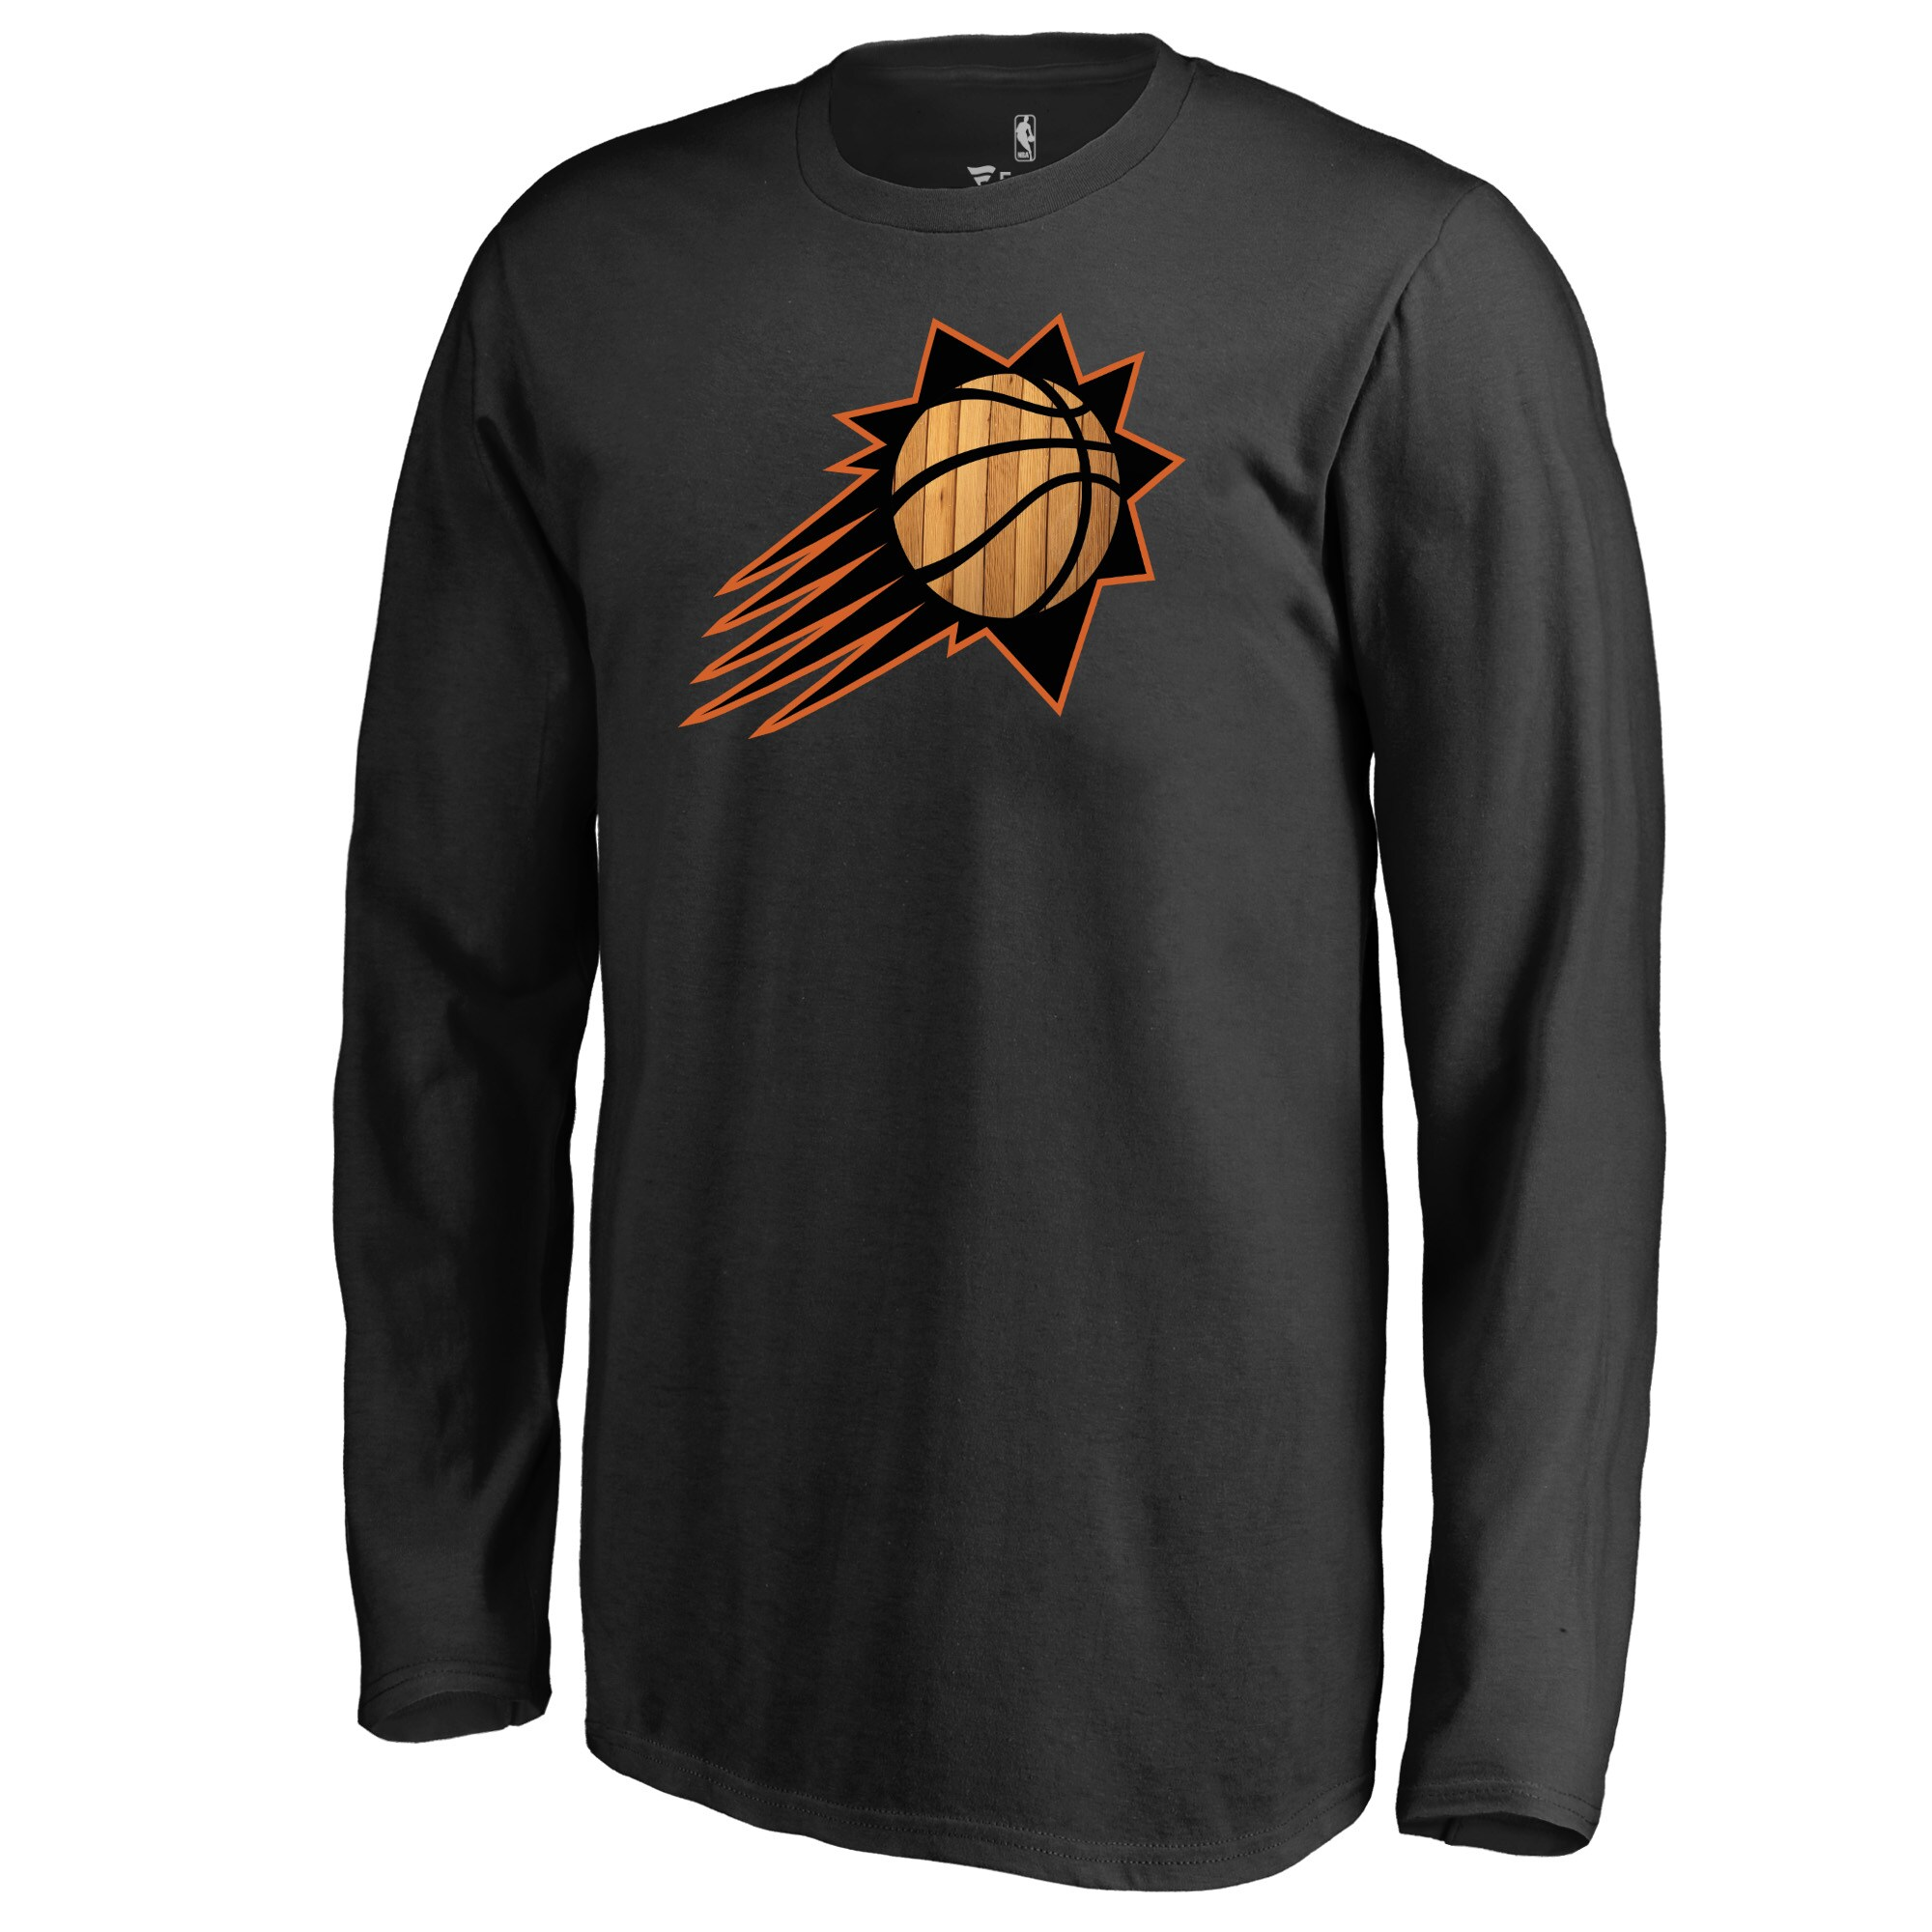 Phoenix Suns Fanatics Branded Youth Hardwood Long Sleeve T-Shirt - Black